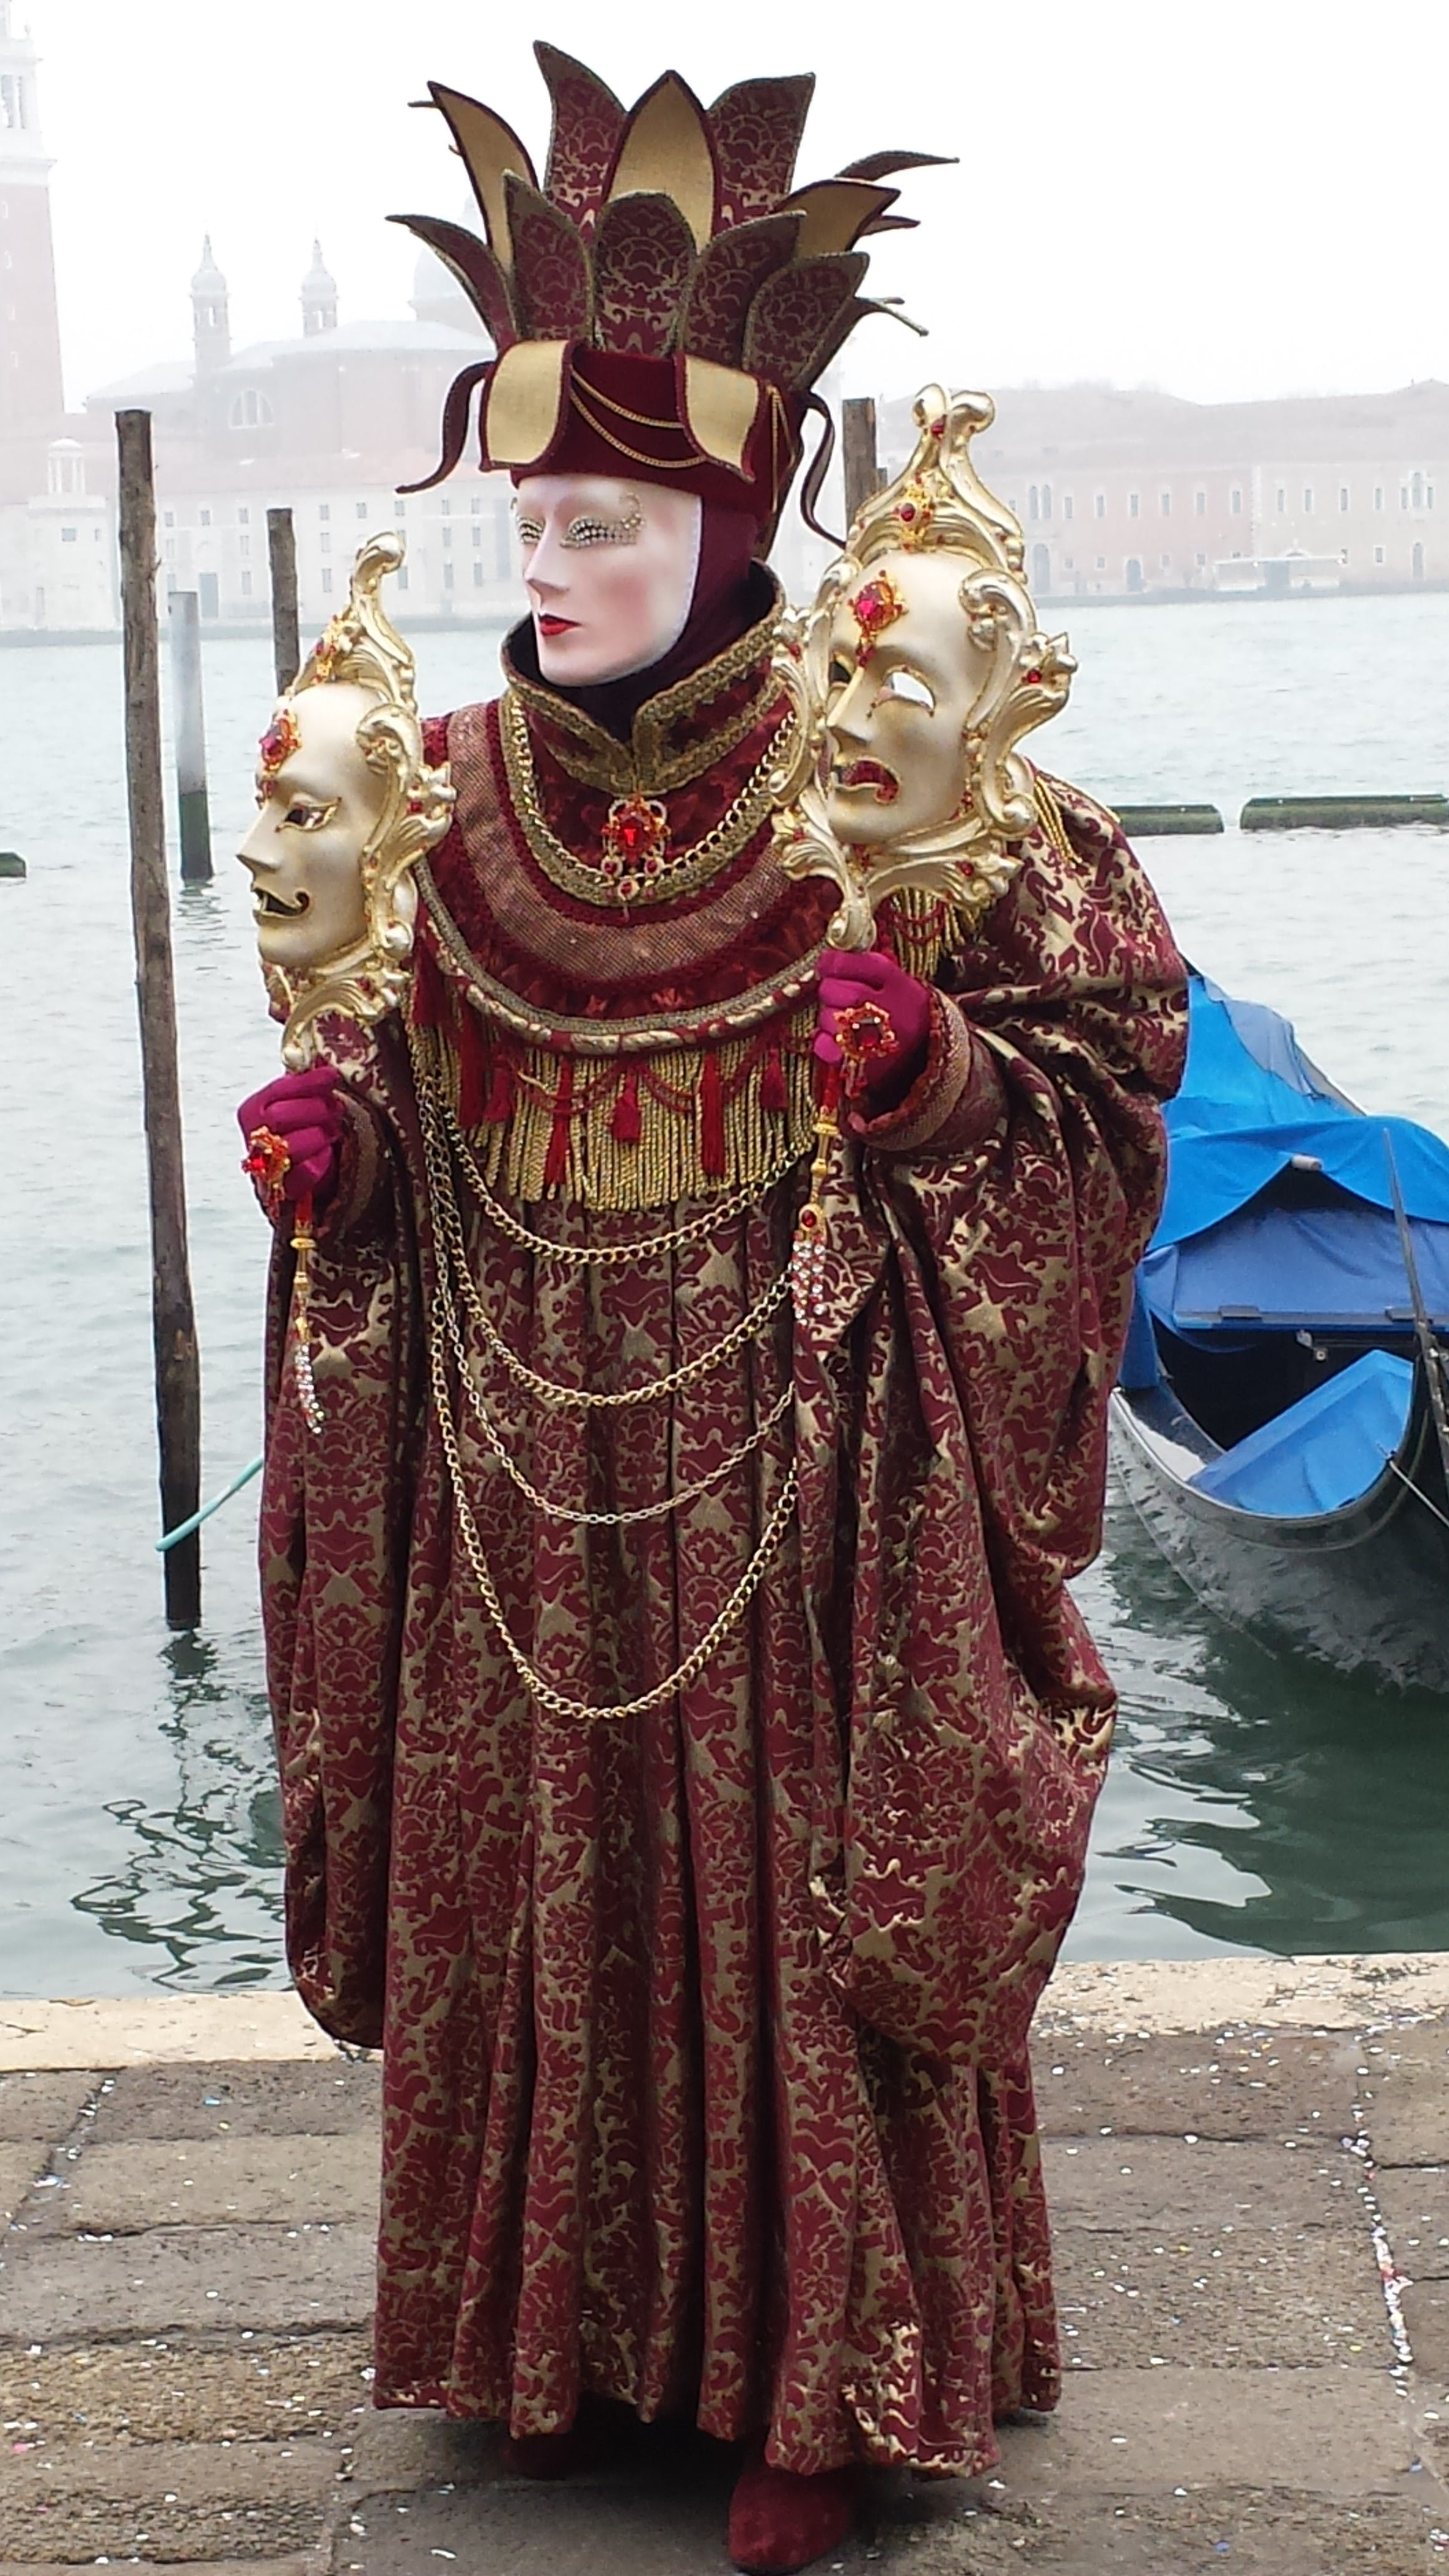 Free stock photo of Carnevale, Venetian Costume, venice